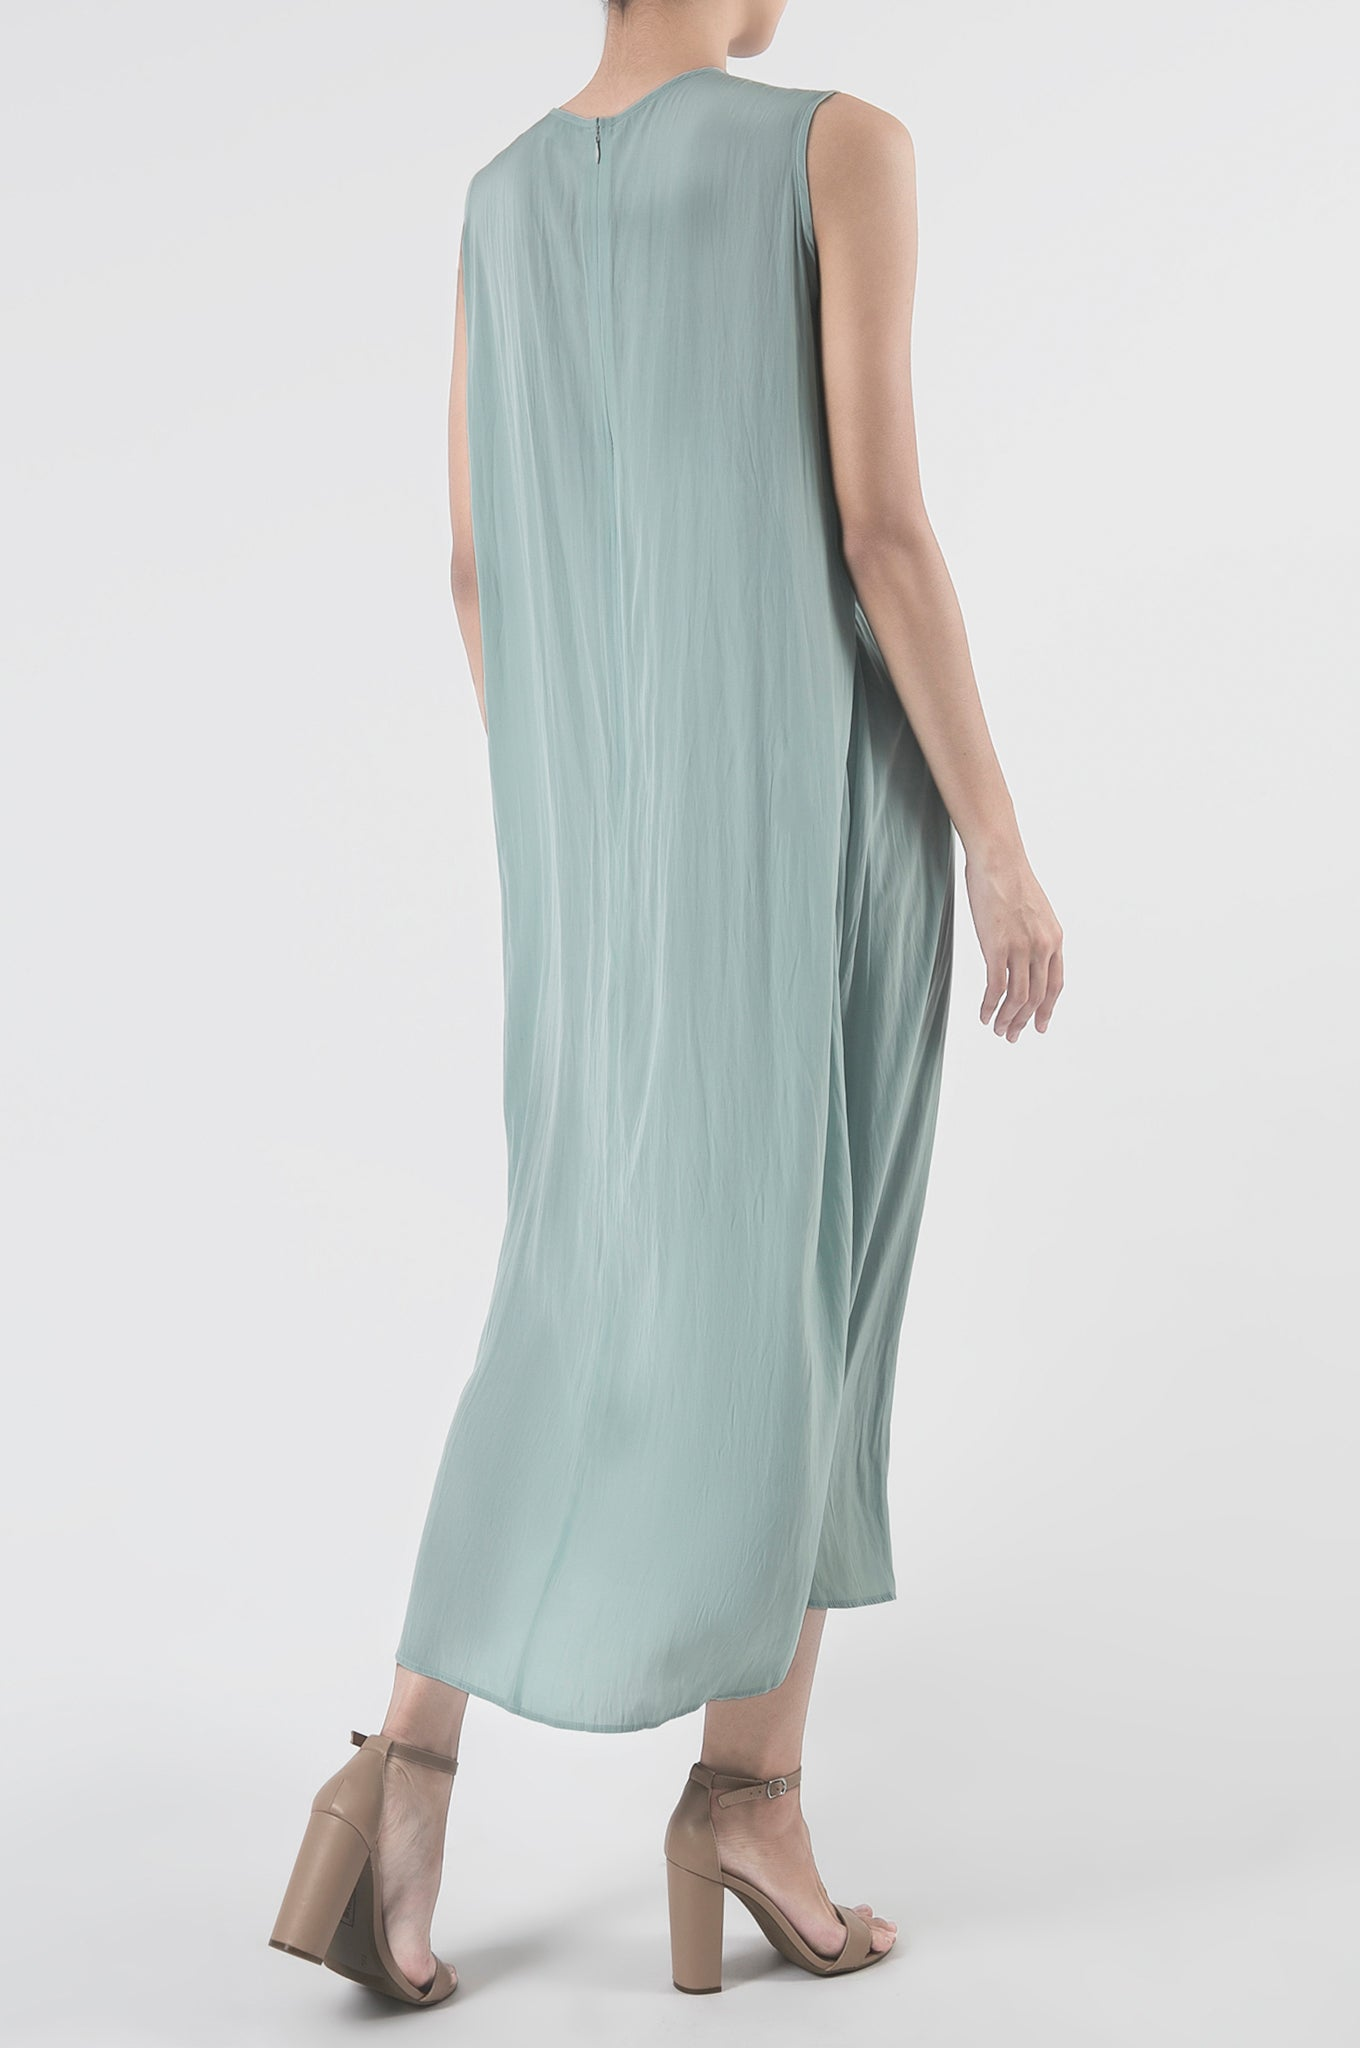 Mint Colonia Dress